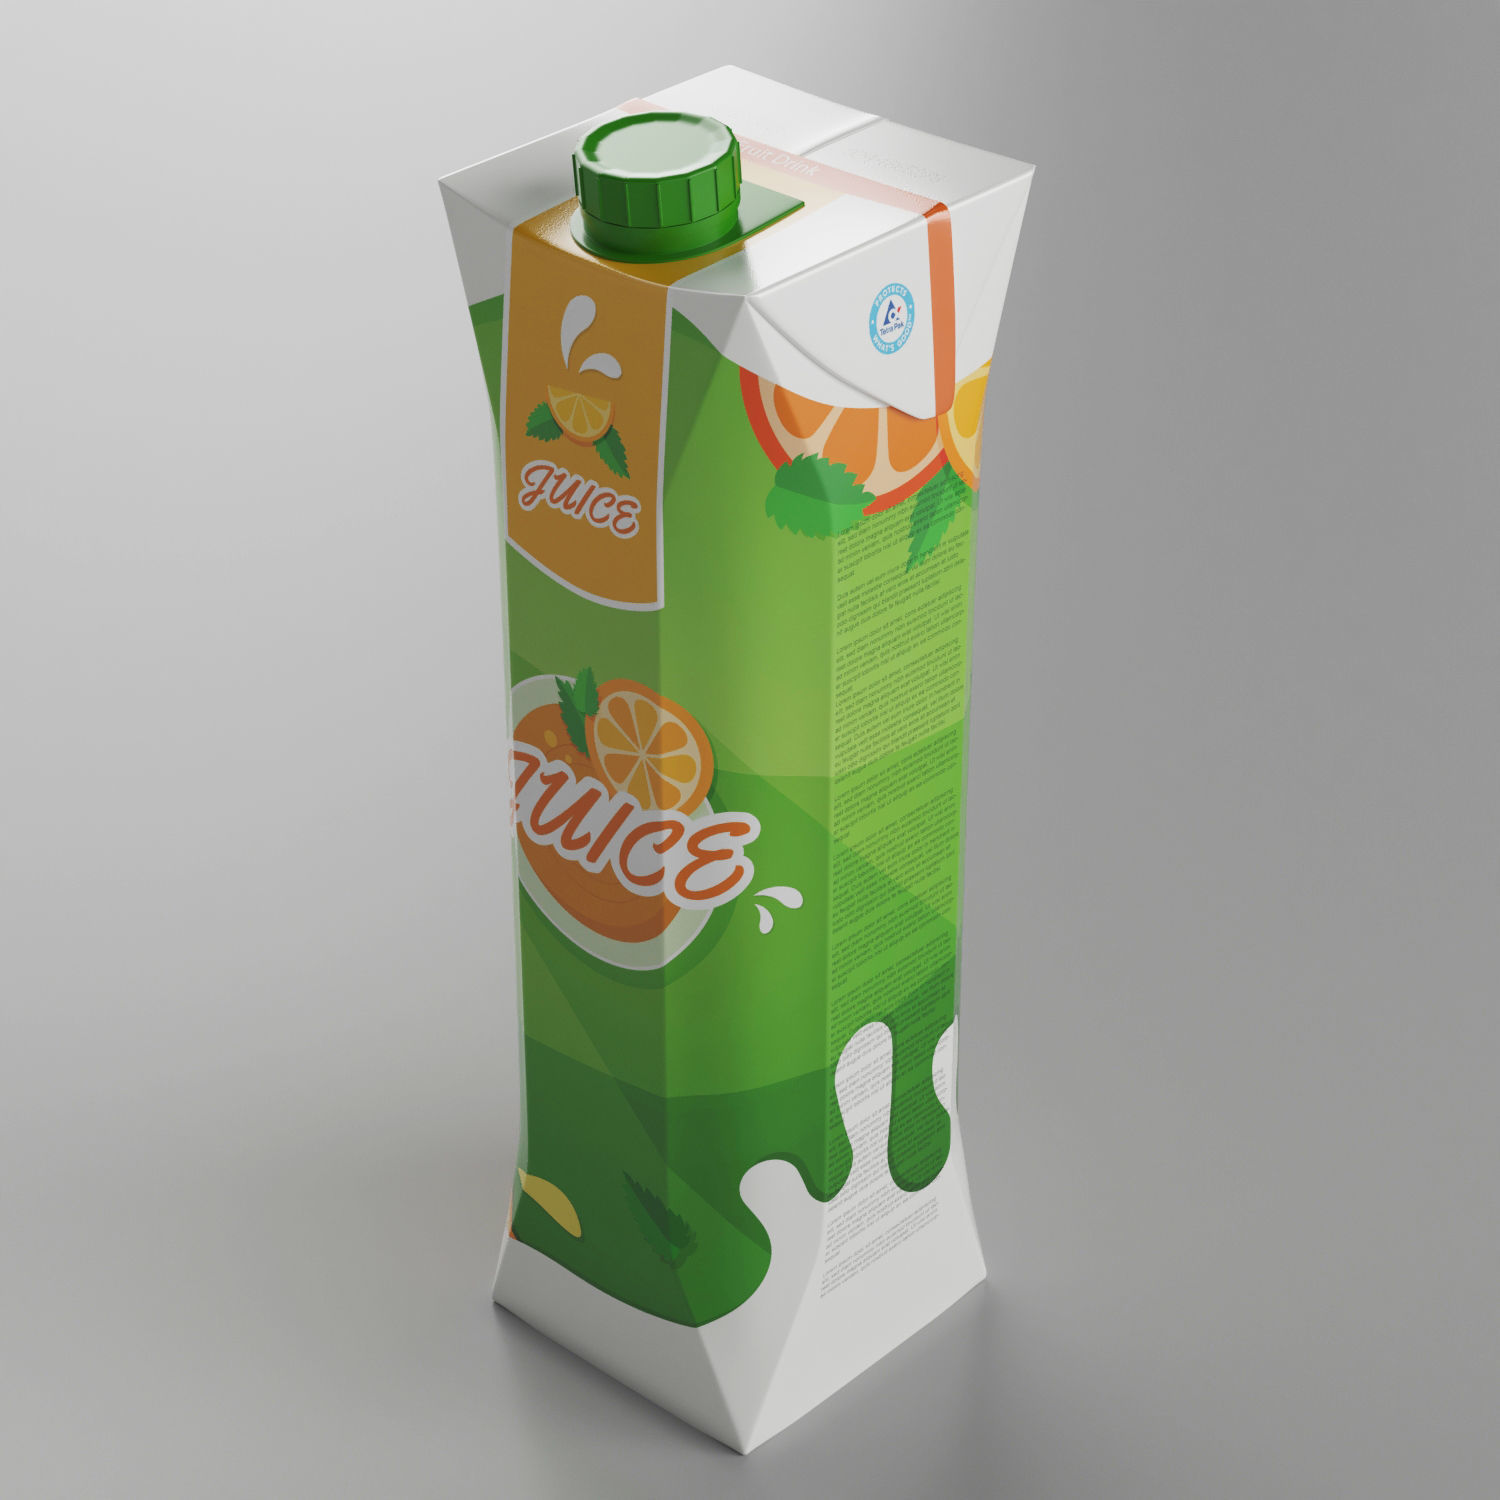 Tetra Juice Carton Box